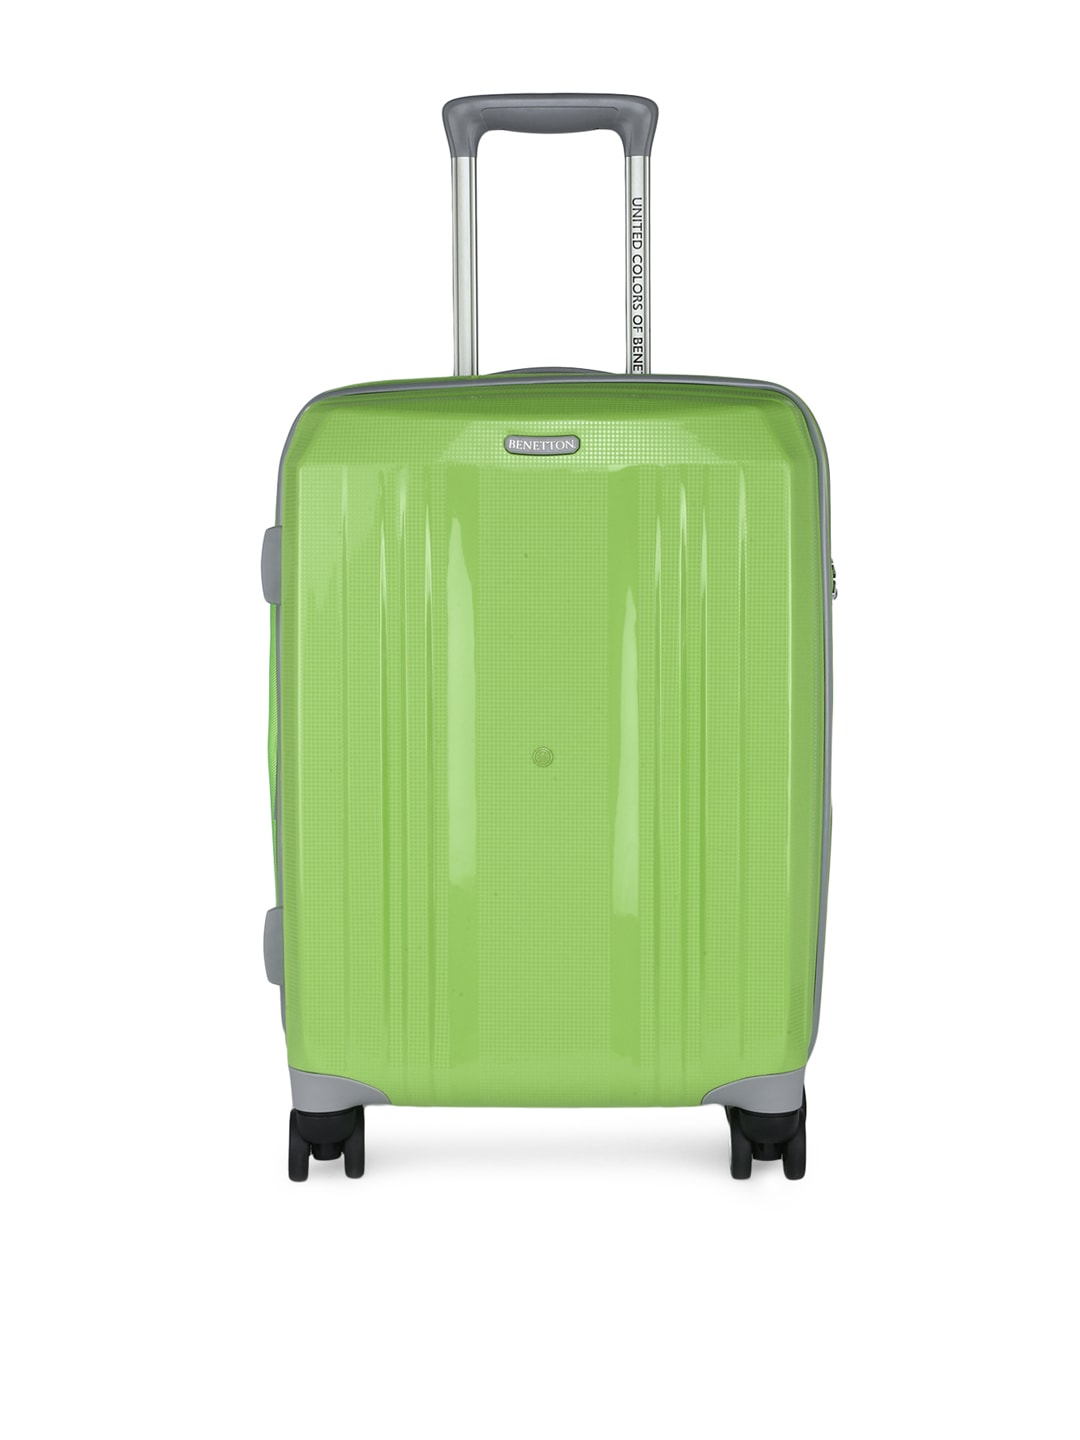 ccbef7fc4dc7 Trolley Bags - Buy Trolley Bags Online in India